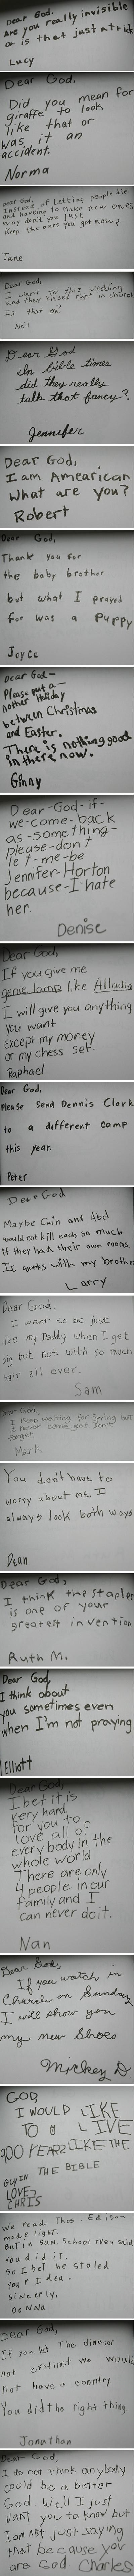 Kids thoughts towards God